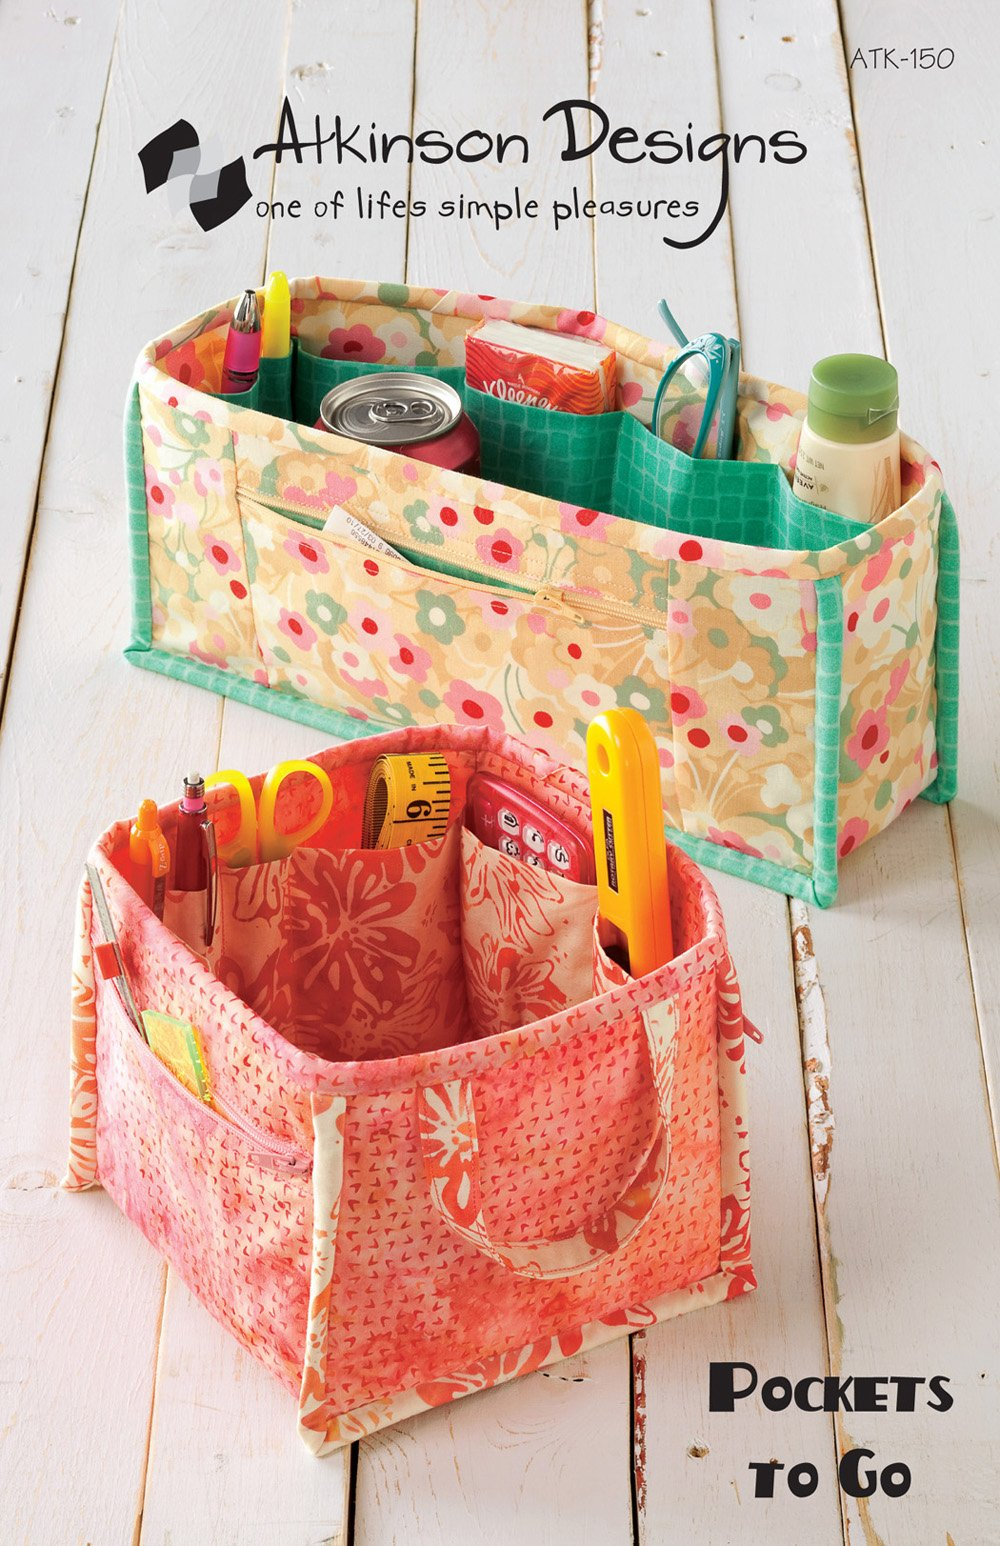 Pockets to Go by Atkinson Designs